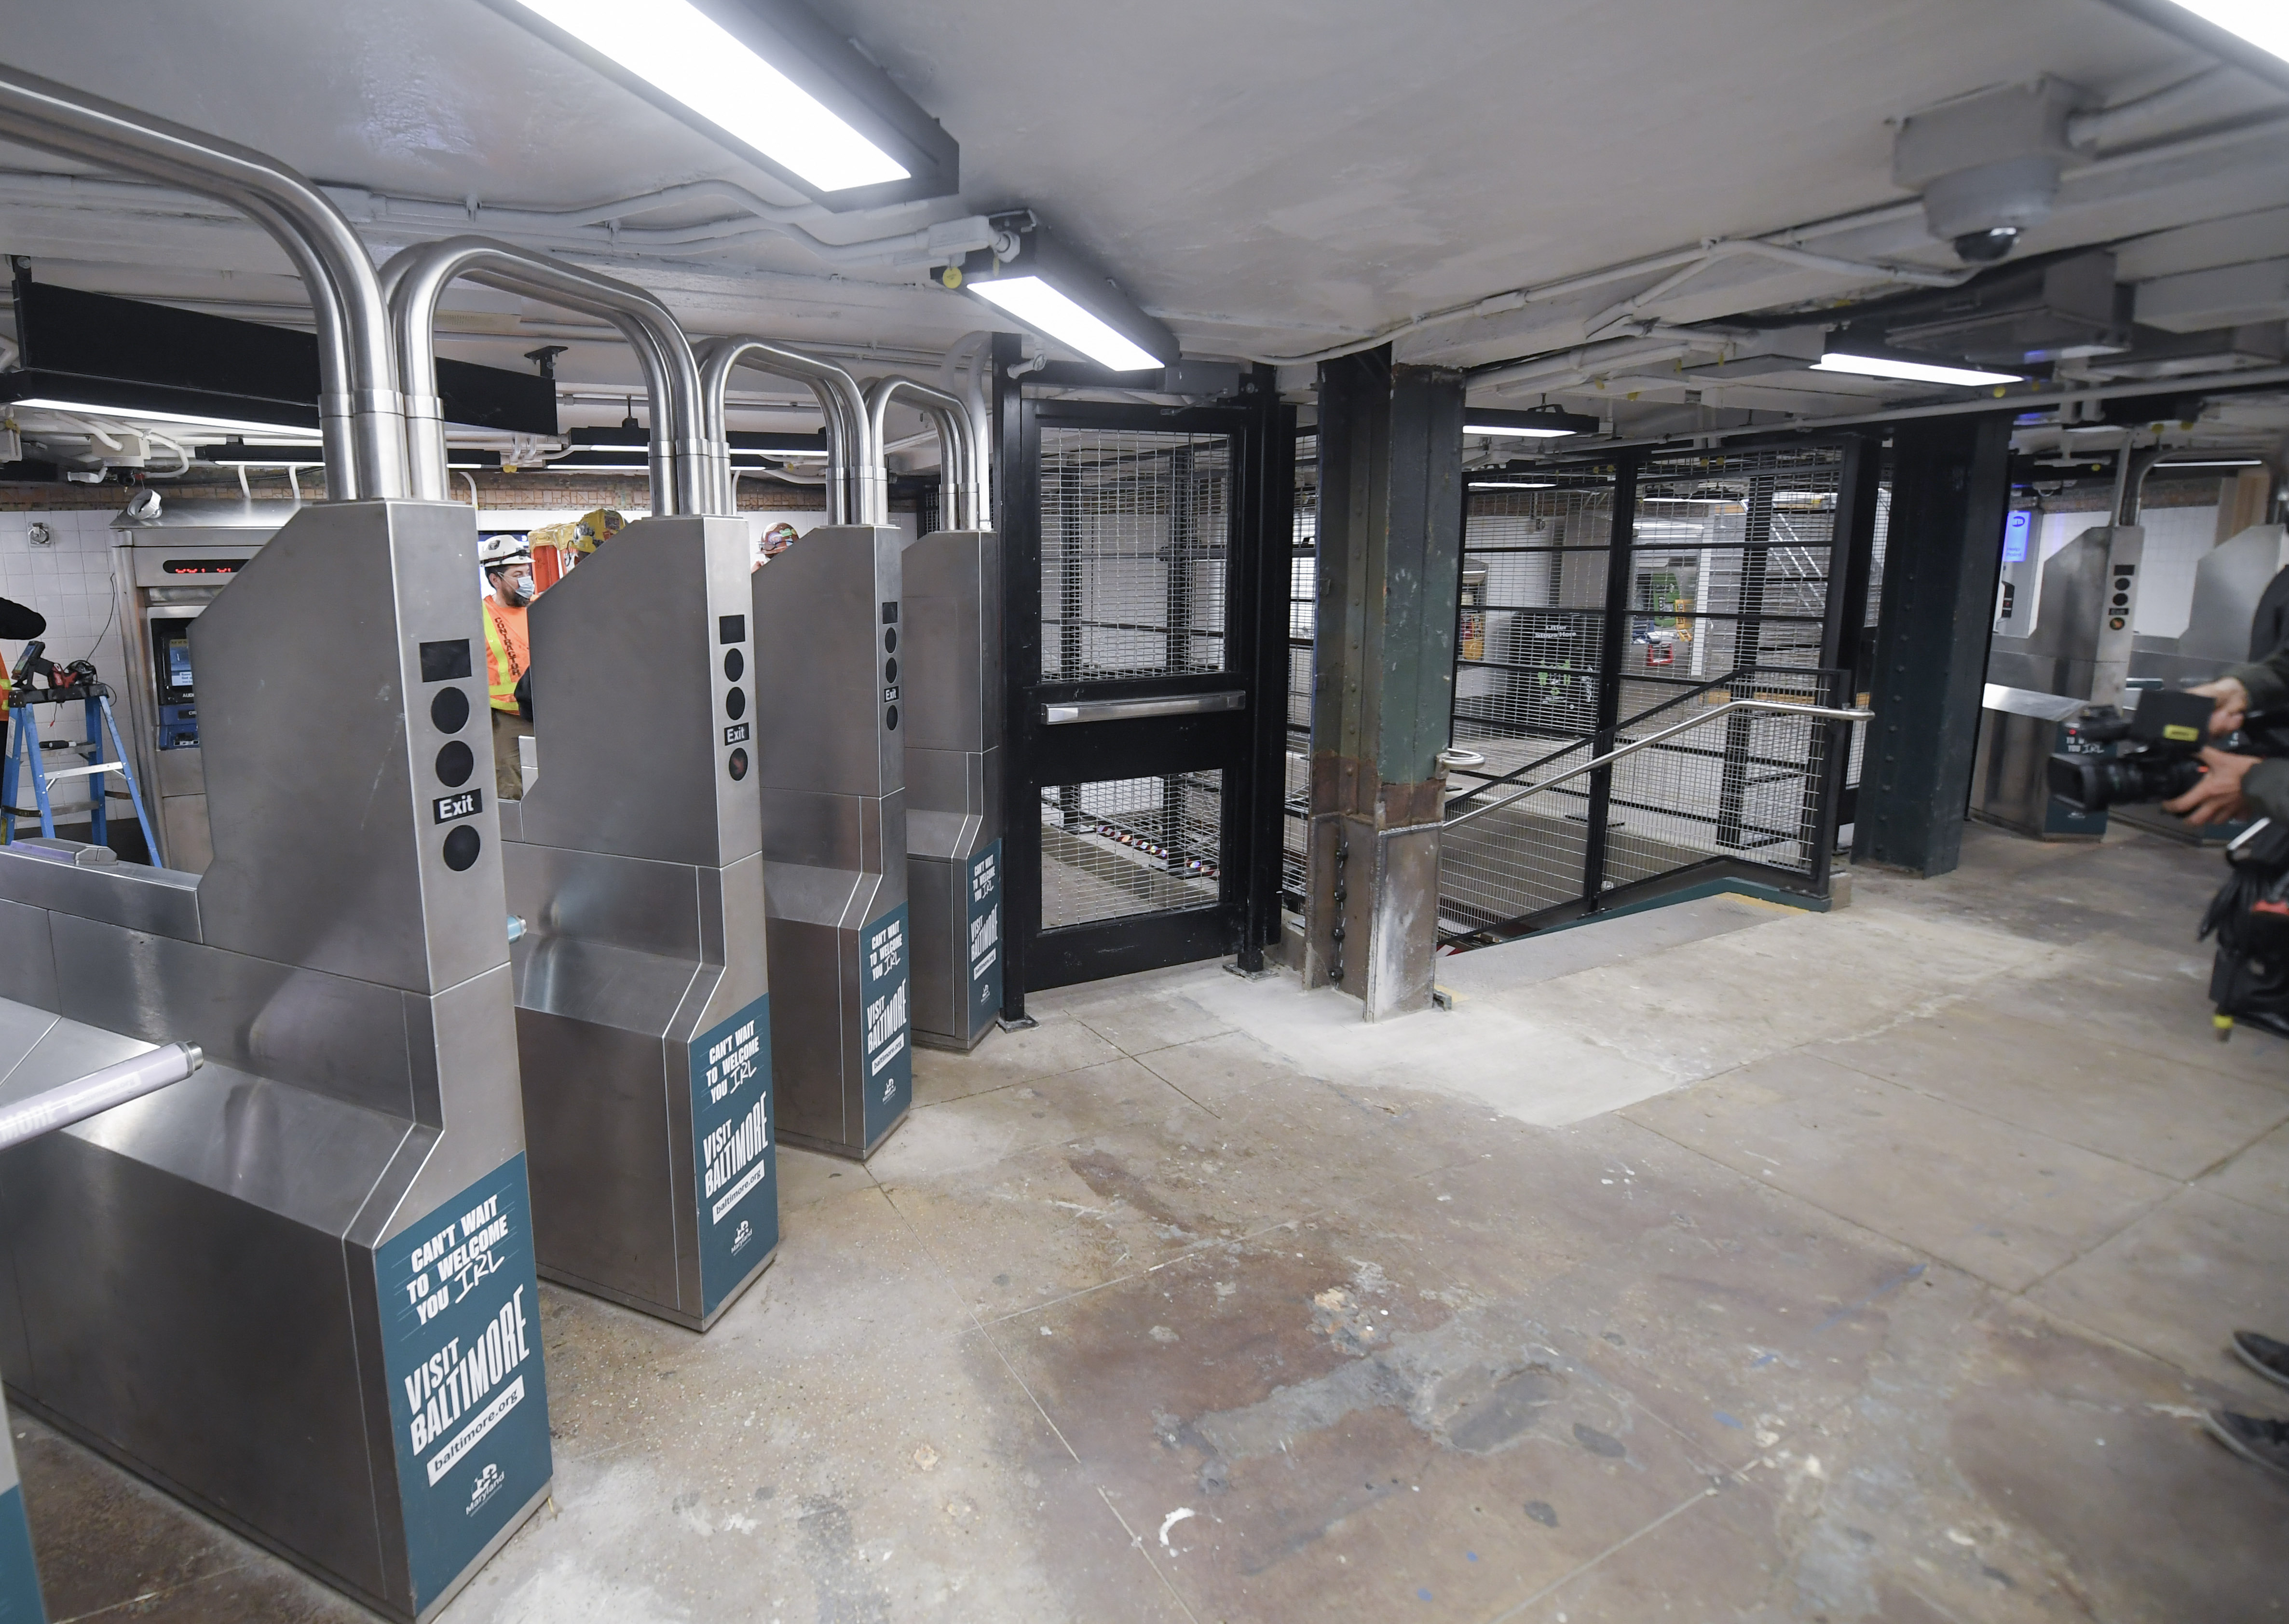 MTA Said: More than 1 in 10 NYC Subway Riders Skipped Paying Fares Over the Summer